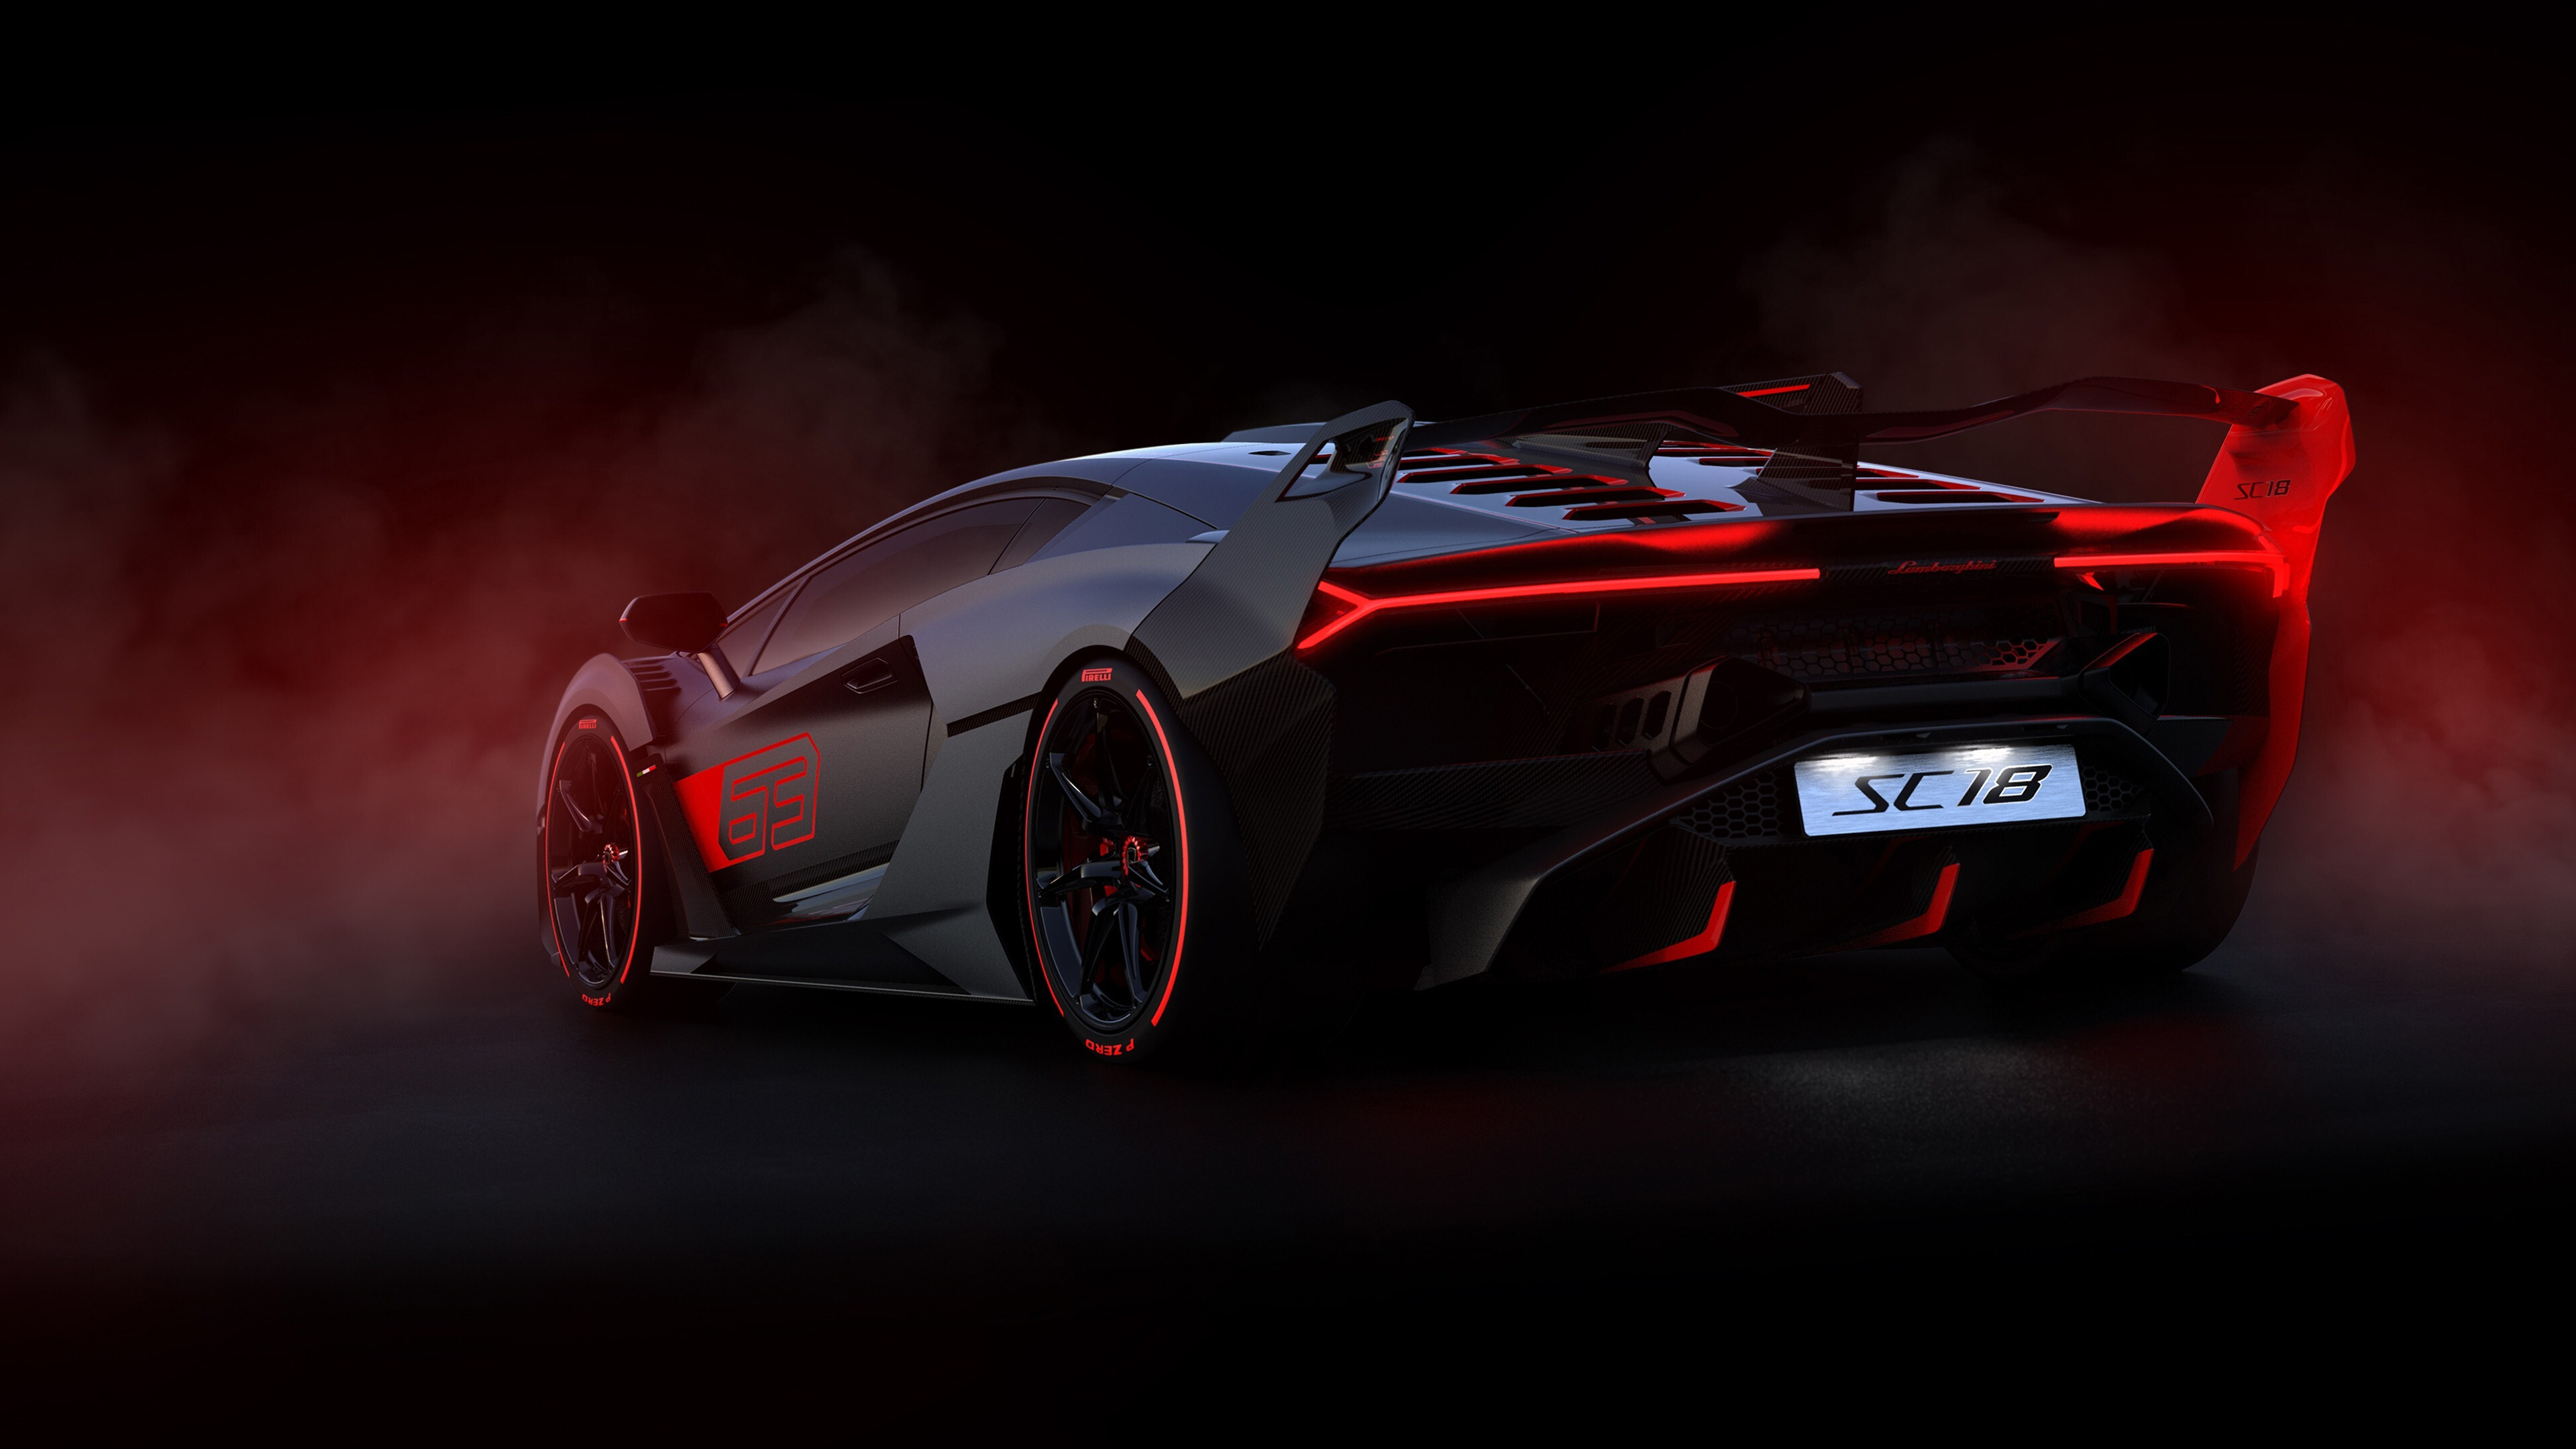 2019 Lamborghini SC18 4K Car Wallpaper